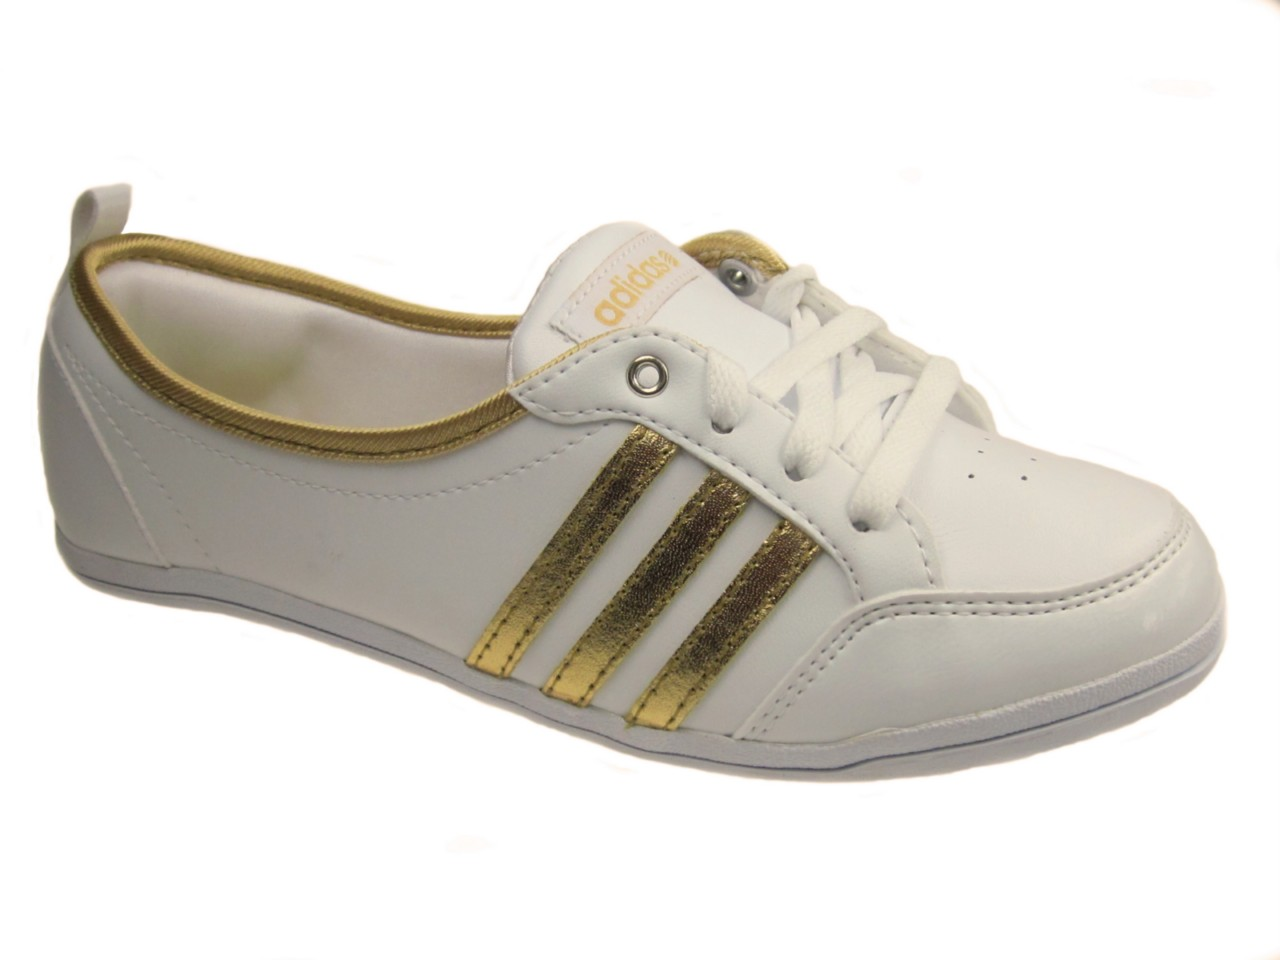 ADIDAS-LADIES-PIONA-BLING-FLAT-BALLERINA-TRAINERS-WHITE-GOLD-SZ-3-8